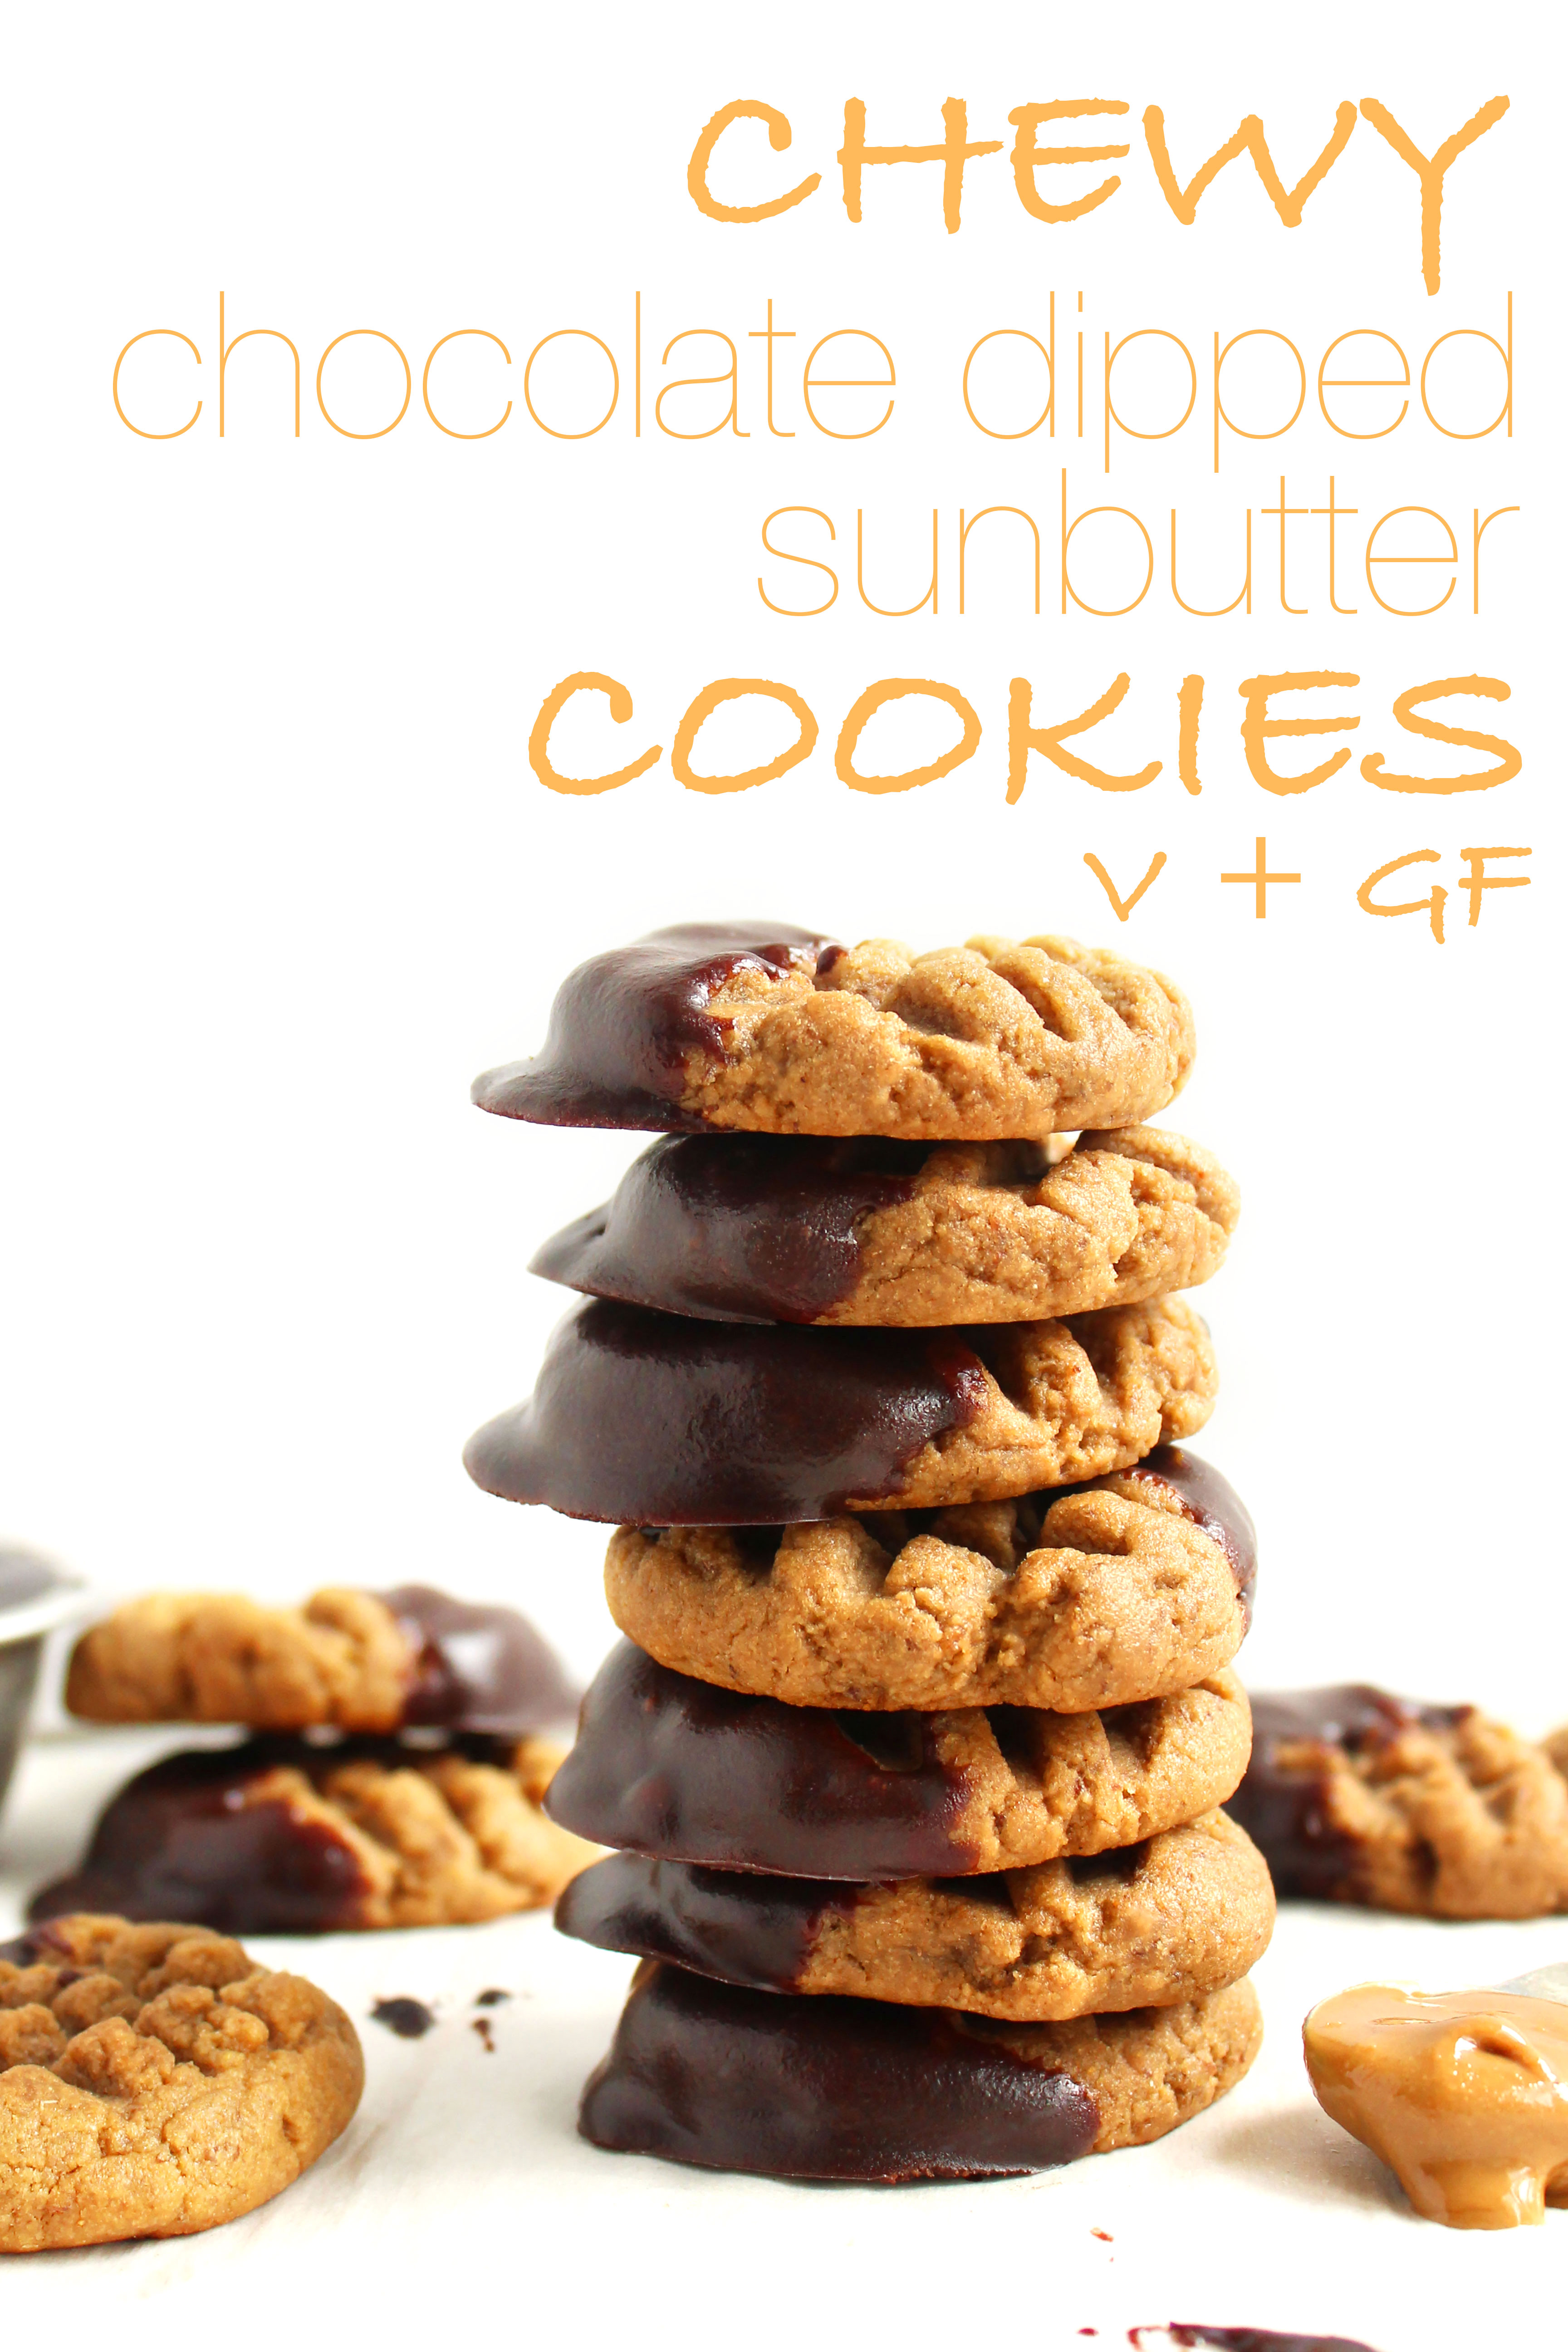 Chewy Chocolate Dipped Sunbutter Cookies (V + GF)! SUPER chewy, peanut-buttery, and delicious! Will cure any peanut butter/chocolate craving! #vegan #glutenfree #cookies | Peachandthecobbler.com